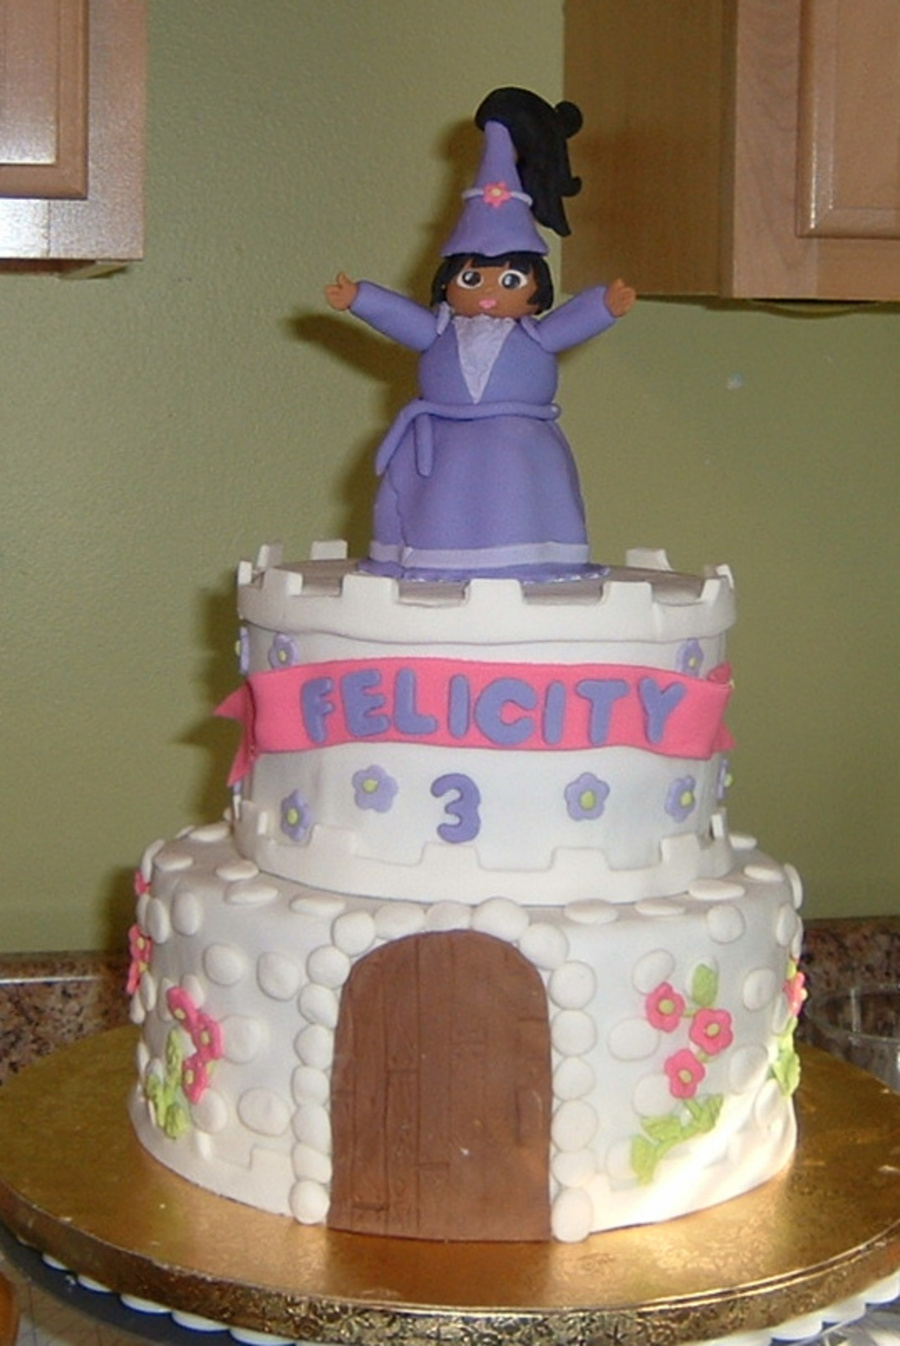 Felicity's Dora The Explorer Cake on Cake Central